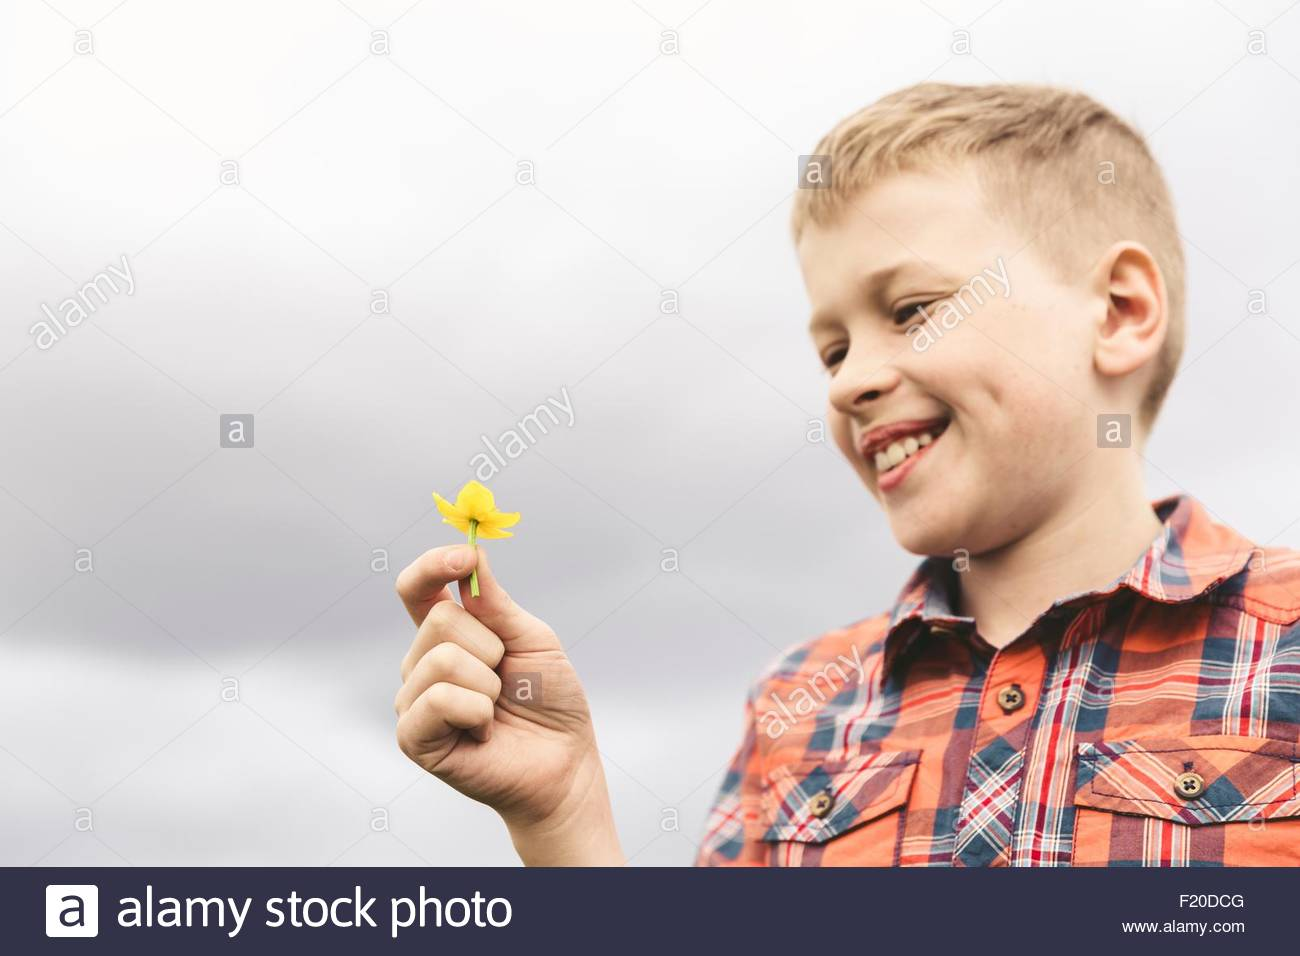 Portrait of boy holding yellow wildflower against overcast sky - Stock Image